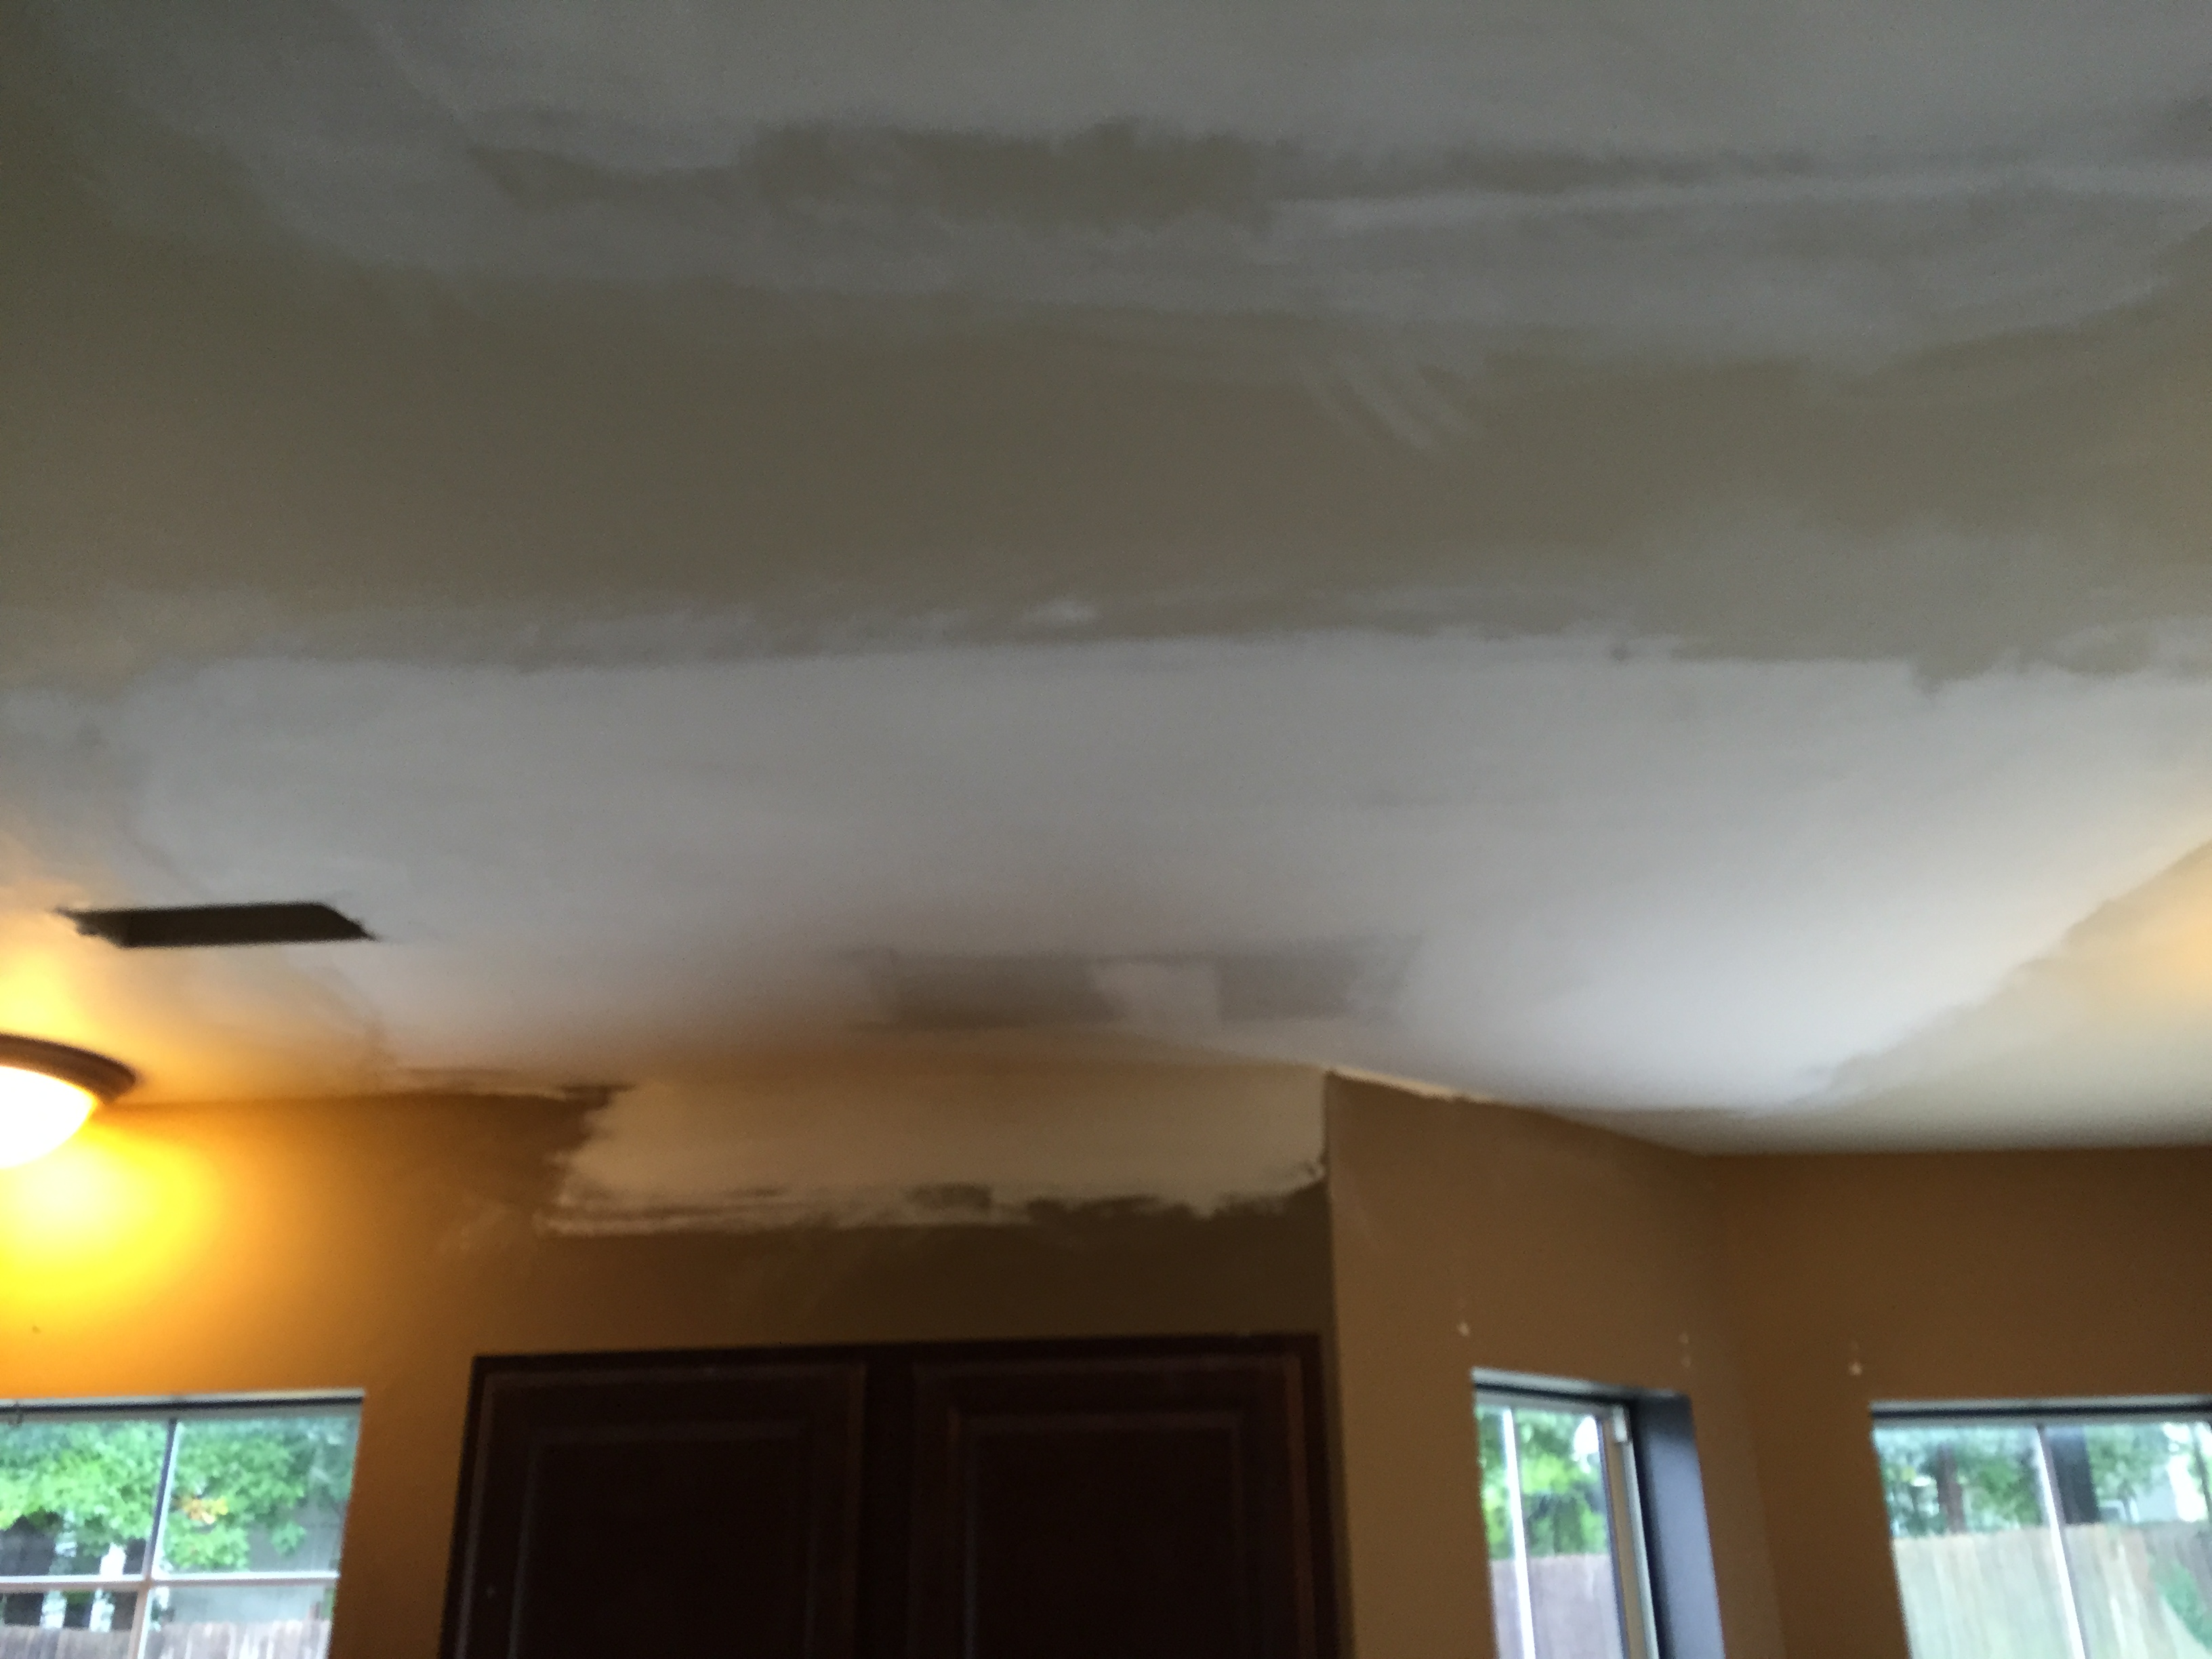 ceiling file is attached fayetteville drywall repair